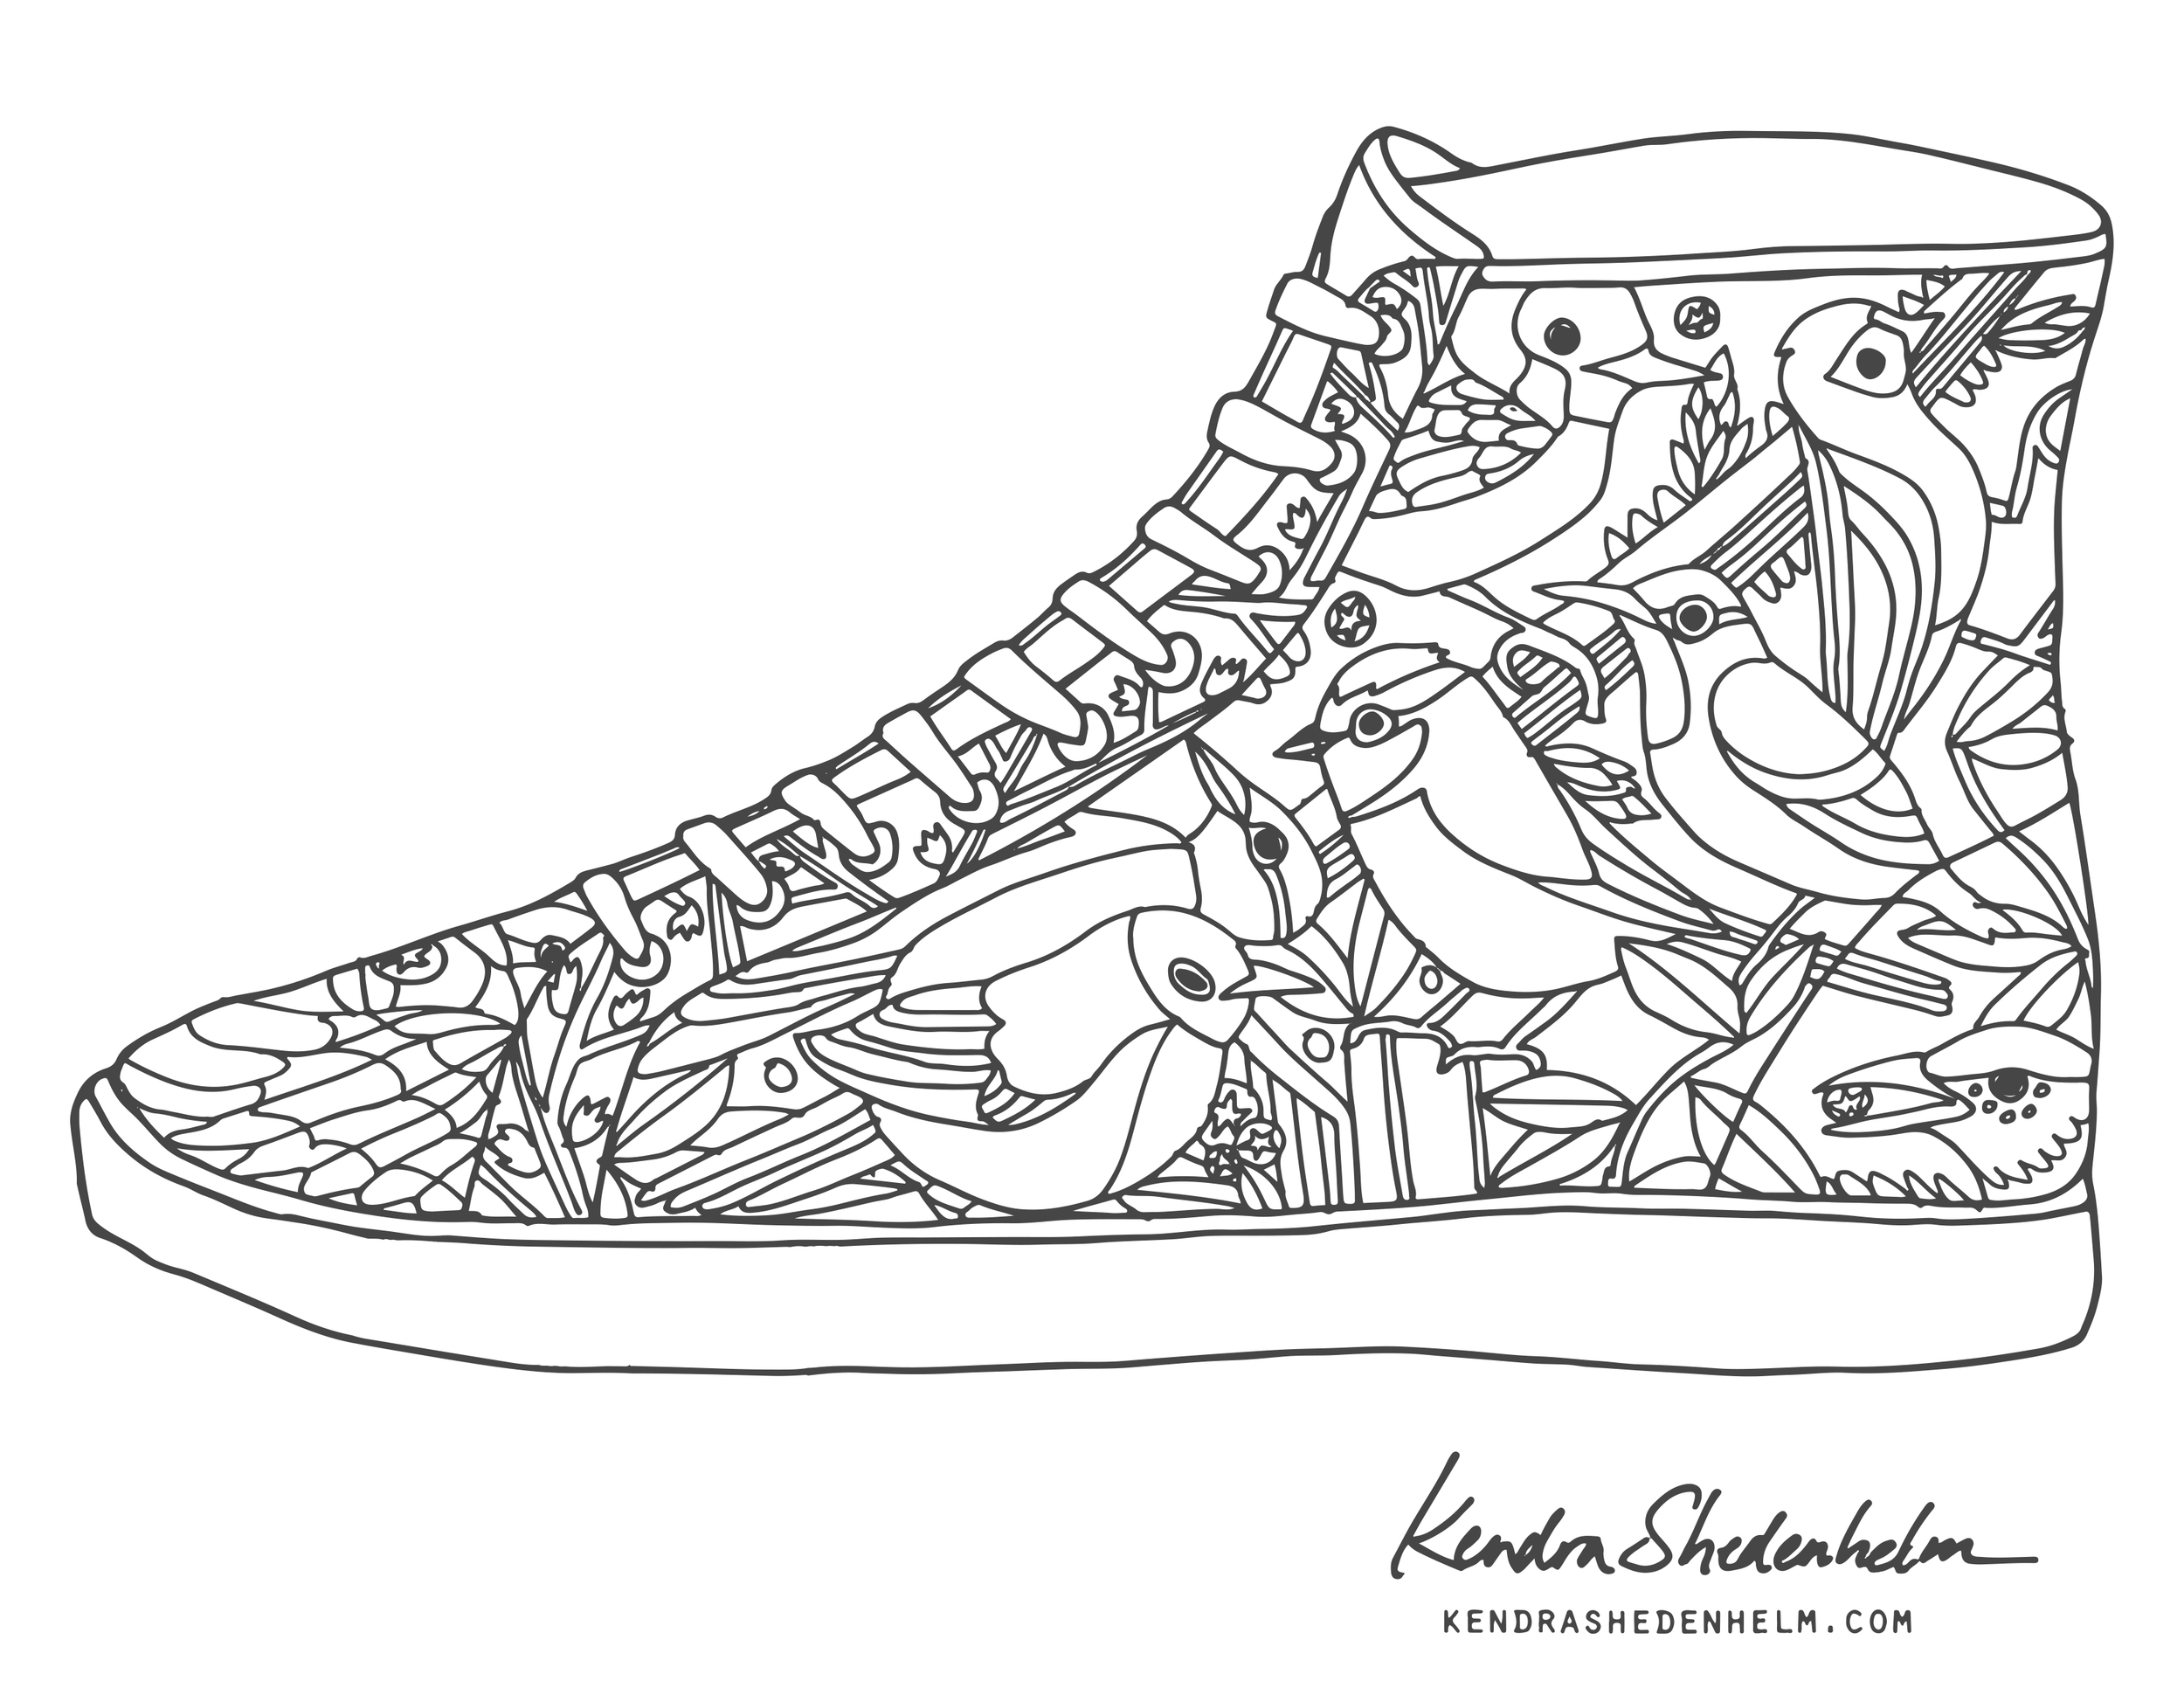 Birds, doodles, shoes and FREE coloring pages! — Kendra Shedenhelm